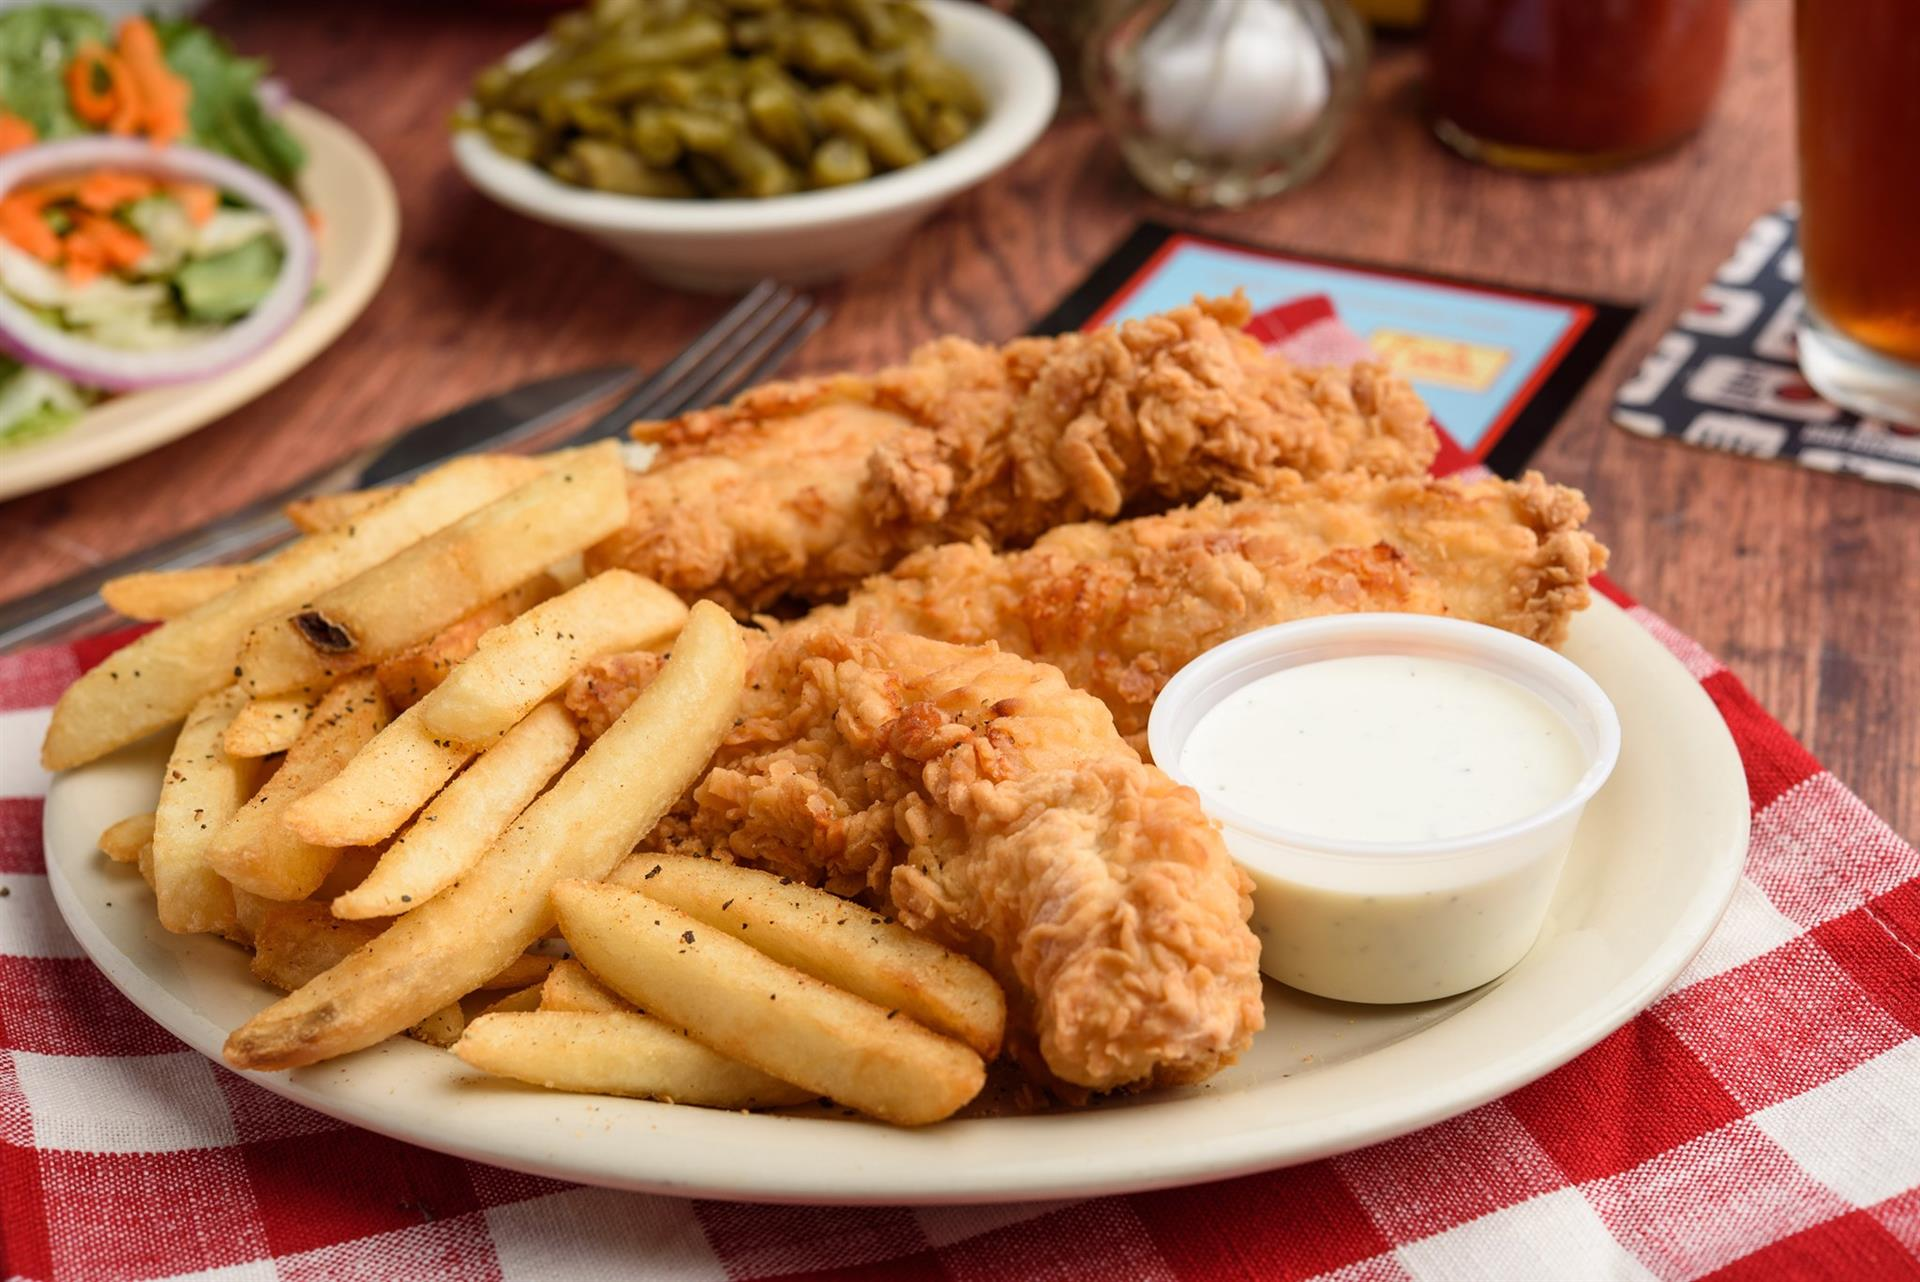 Chicken Fingers and Fries with dipping sauce